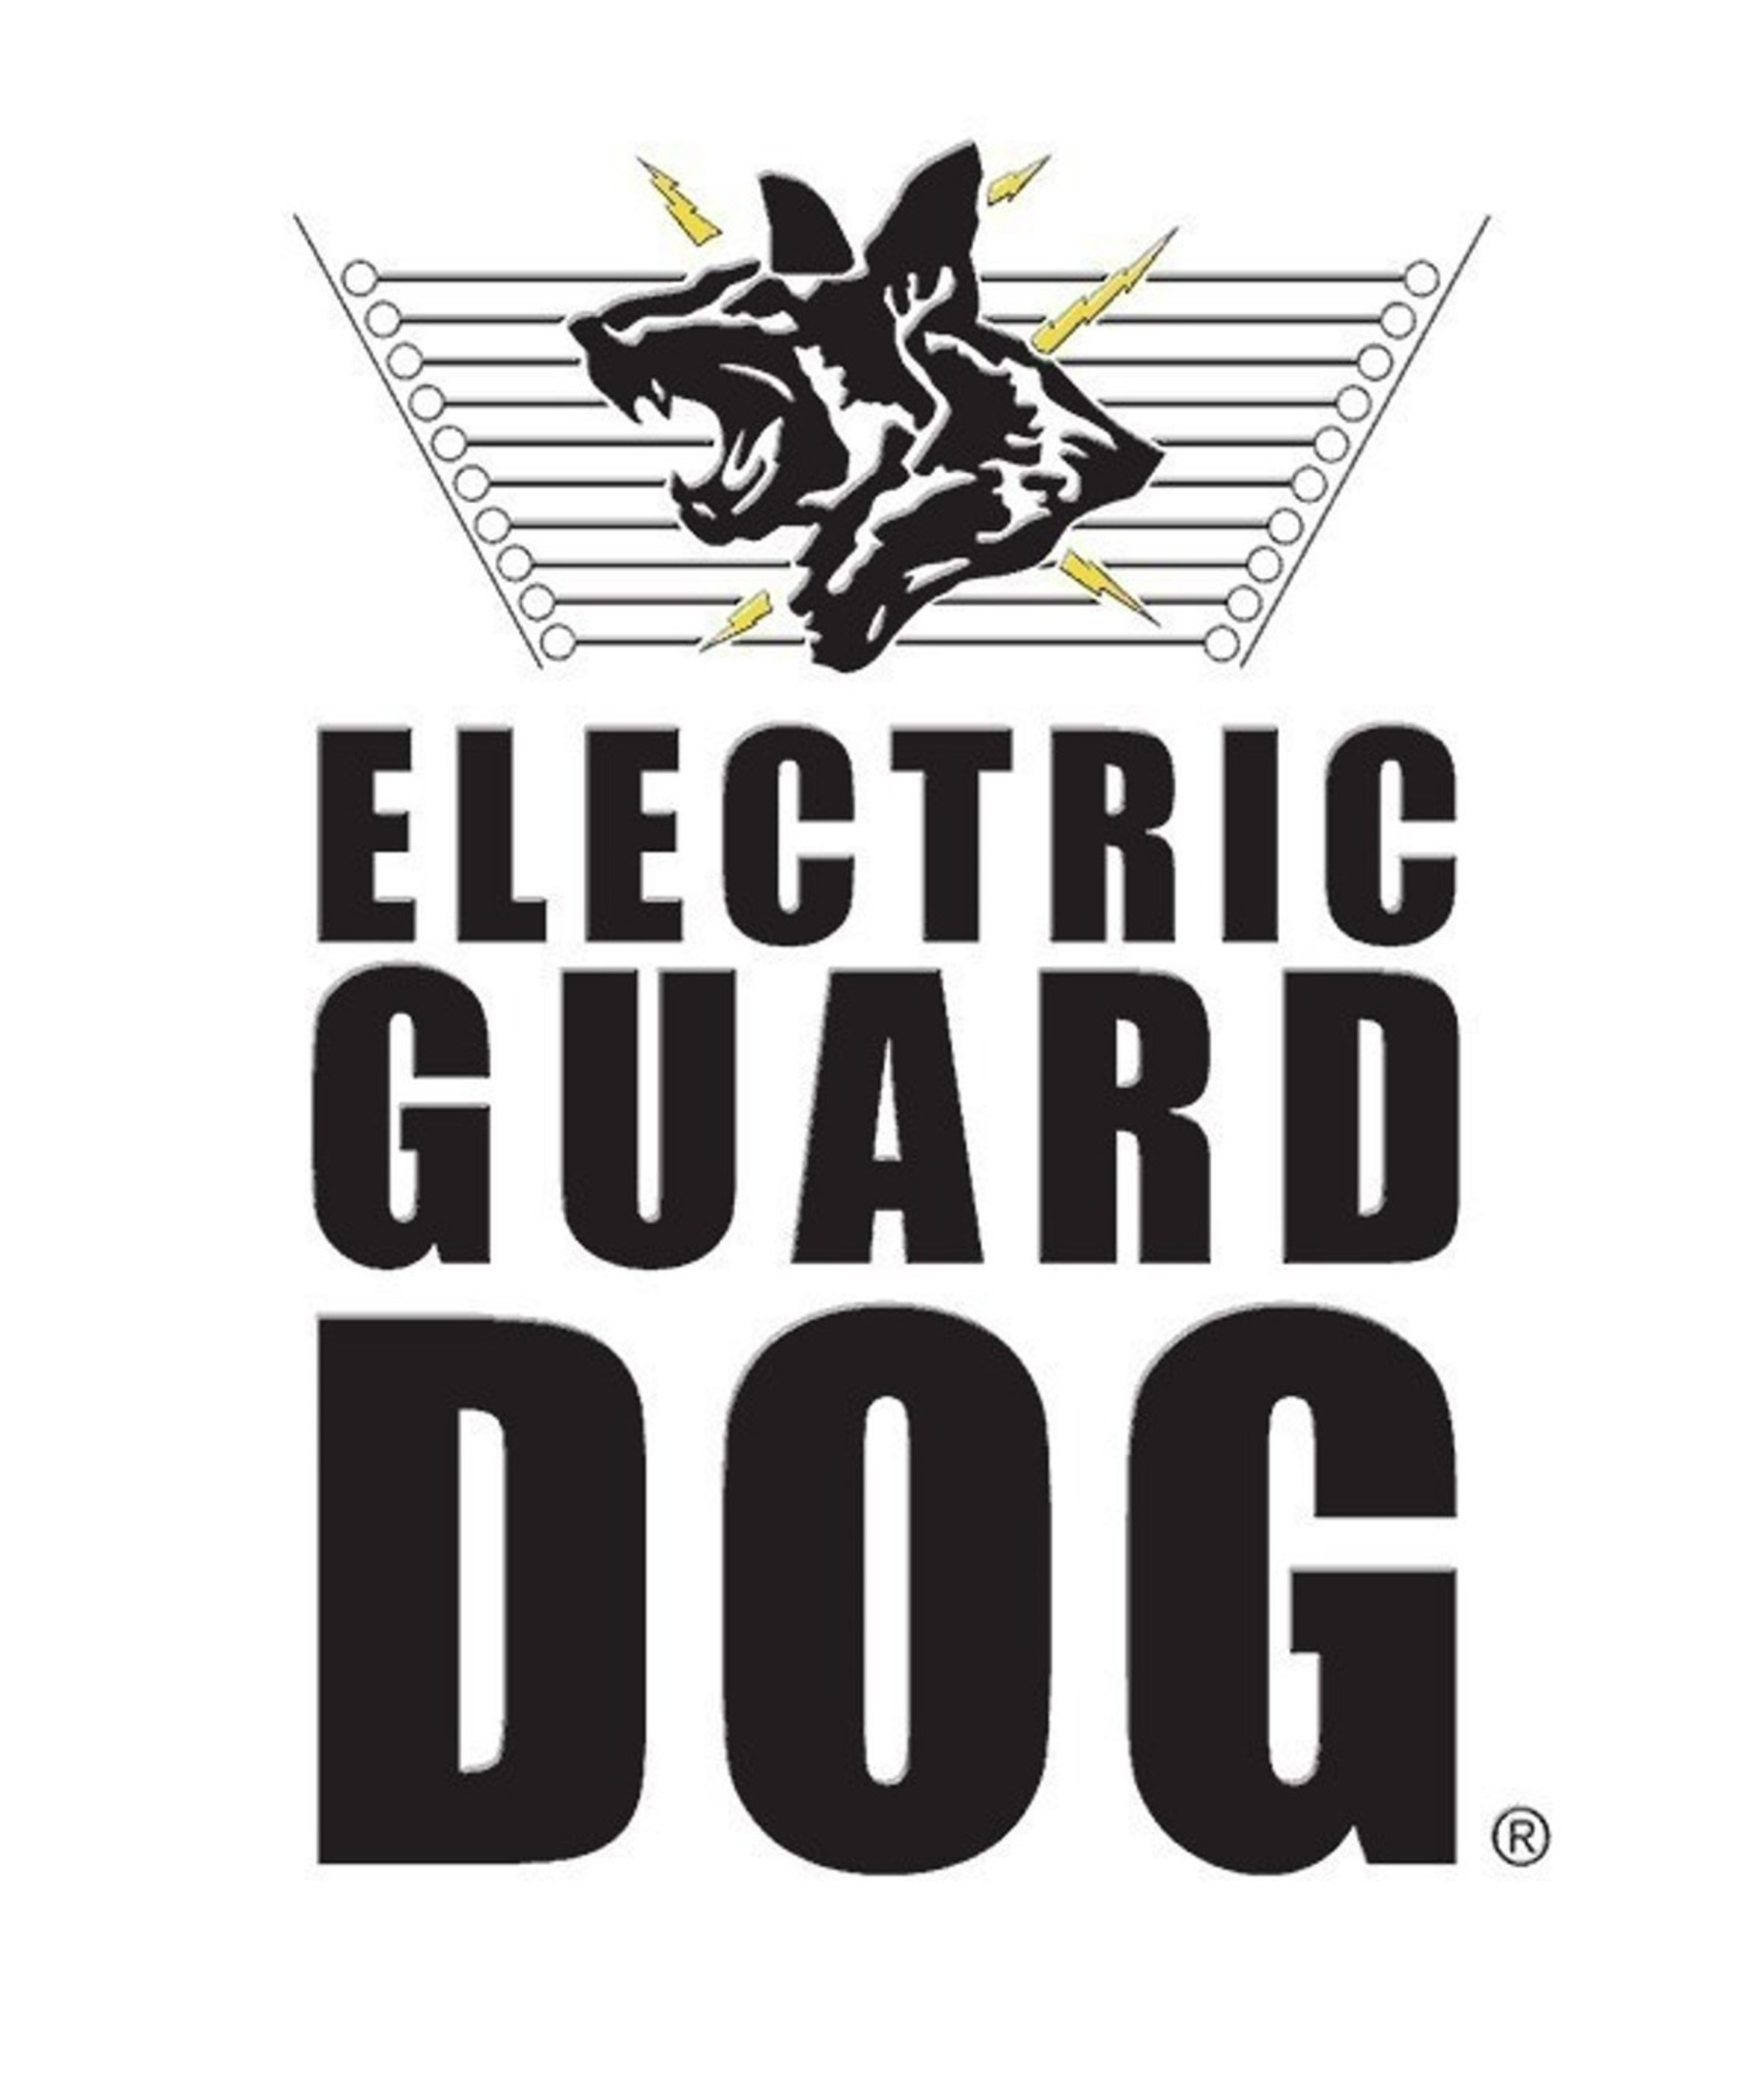 SECURITY IN SUCCESS: Electric Guard Dog Makes 4th Appearance on Inc. 5000 List